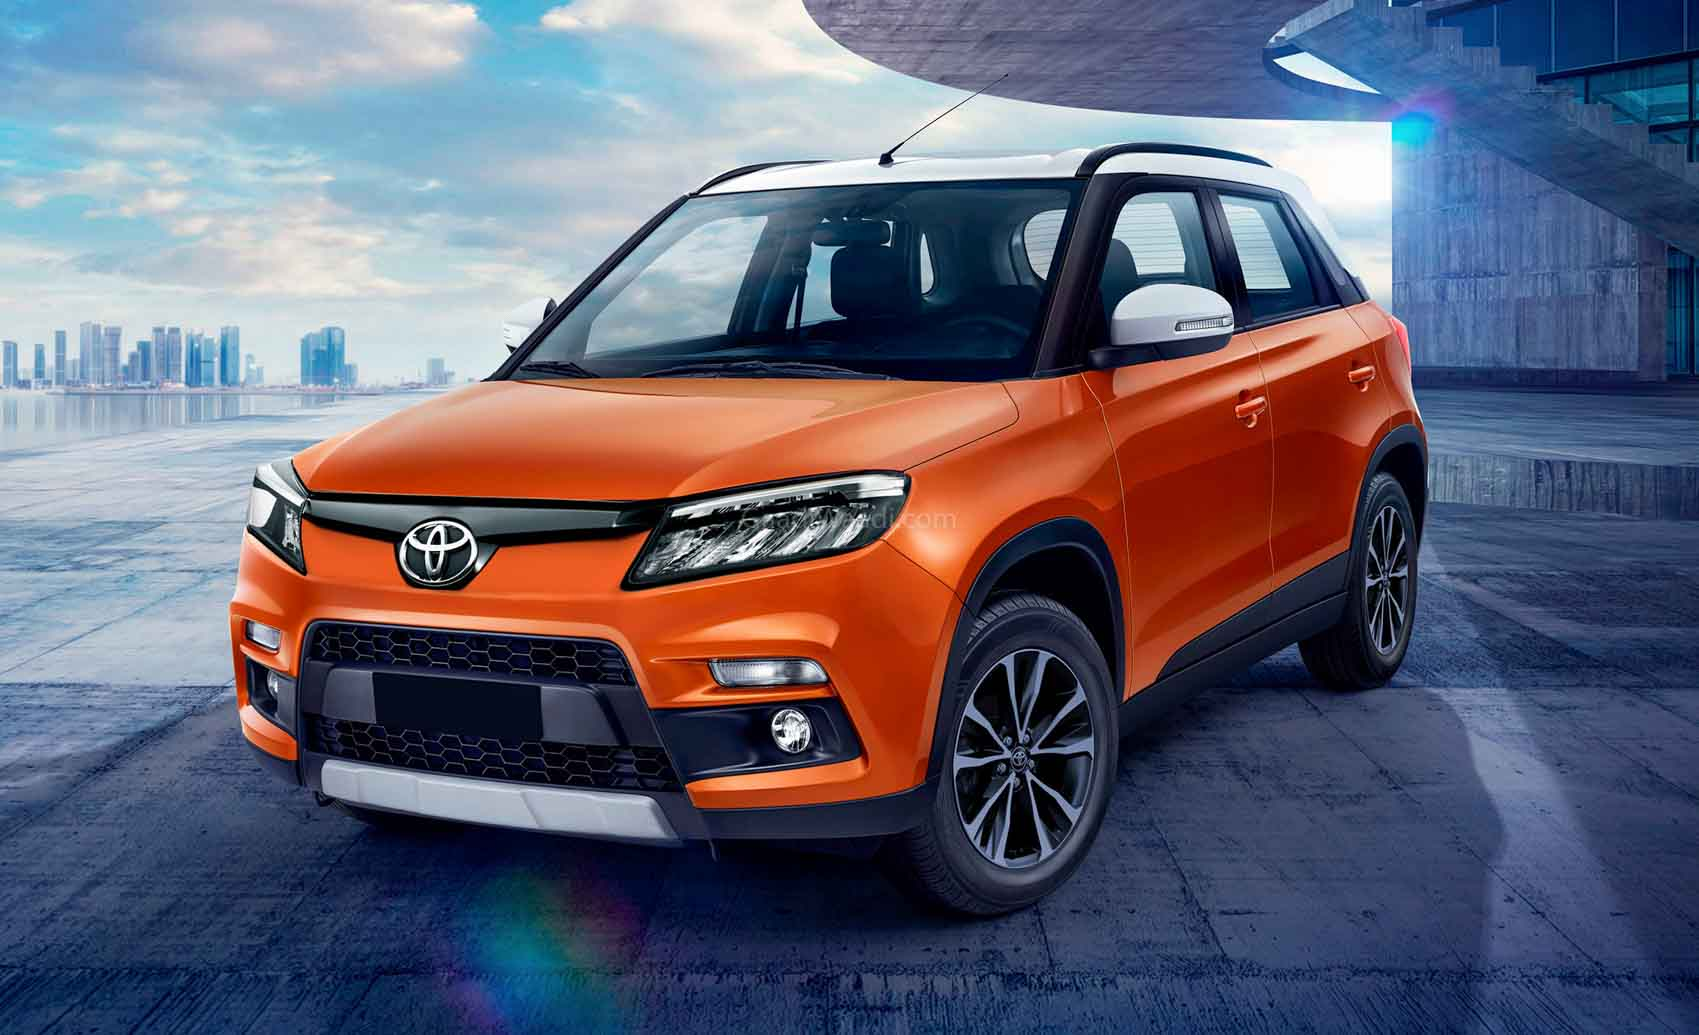 Toyota Urban Cruiser (Brezza Based) Compact SUV Rendered; India Launch Soon